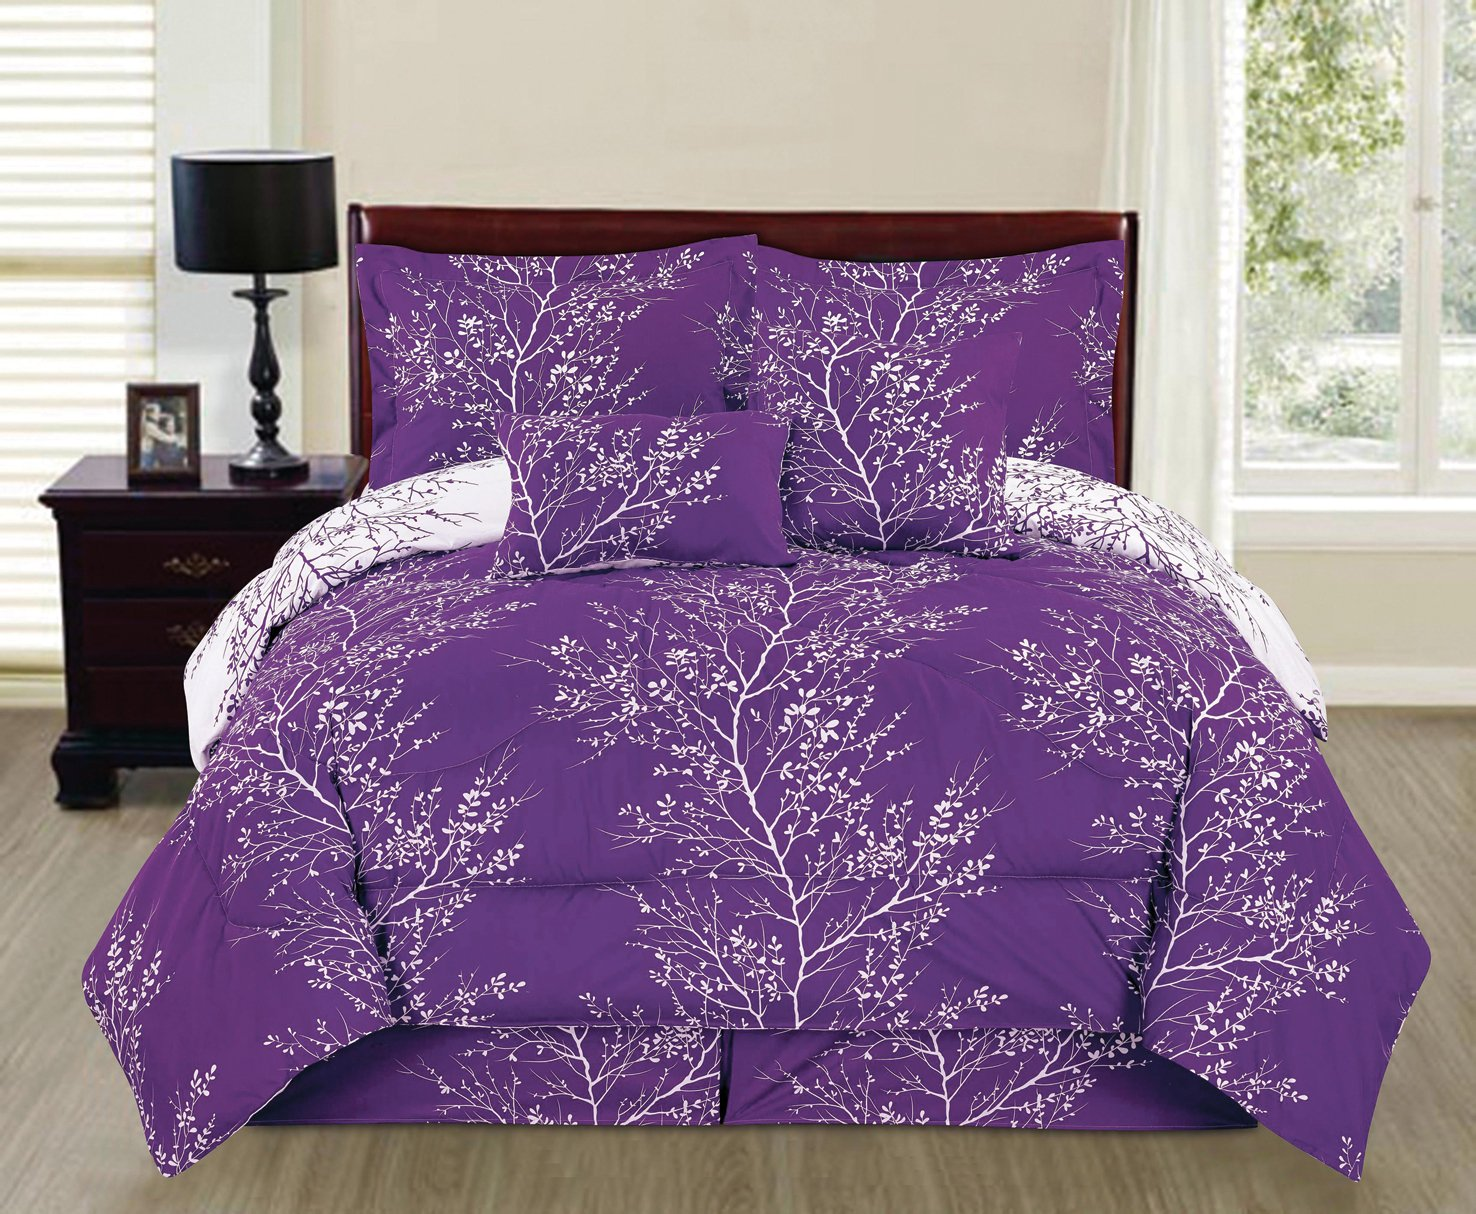 Black and purple bed sheets - 6 Piece Reversible Branches Comforter Set New Bedding King Purple